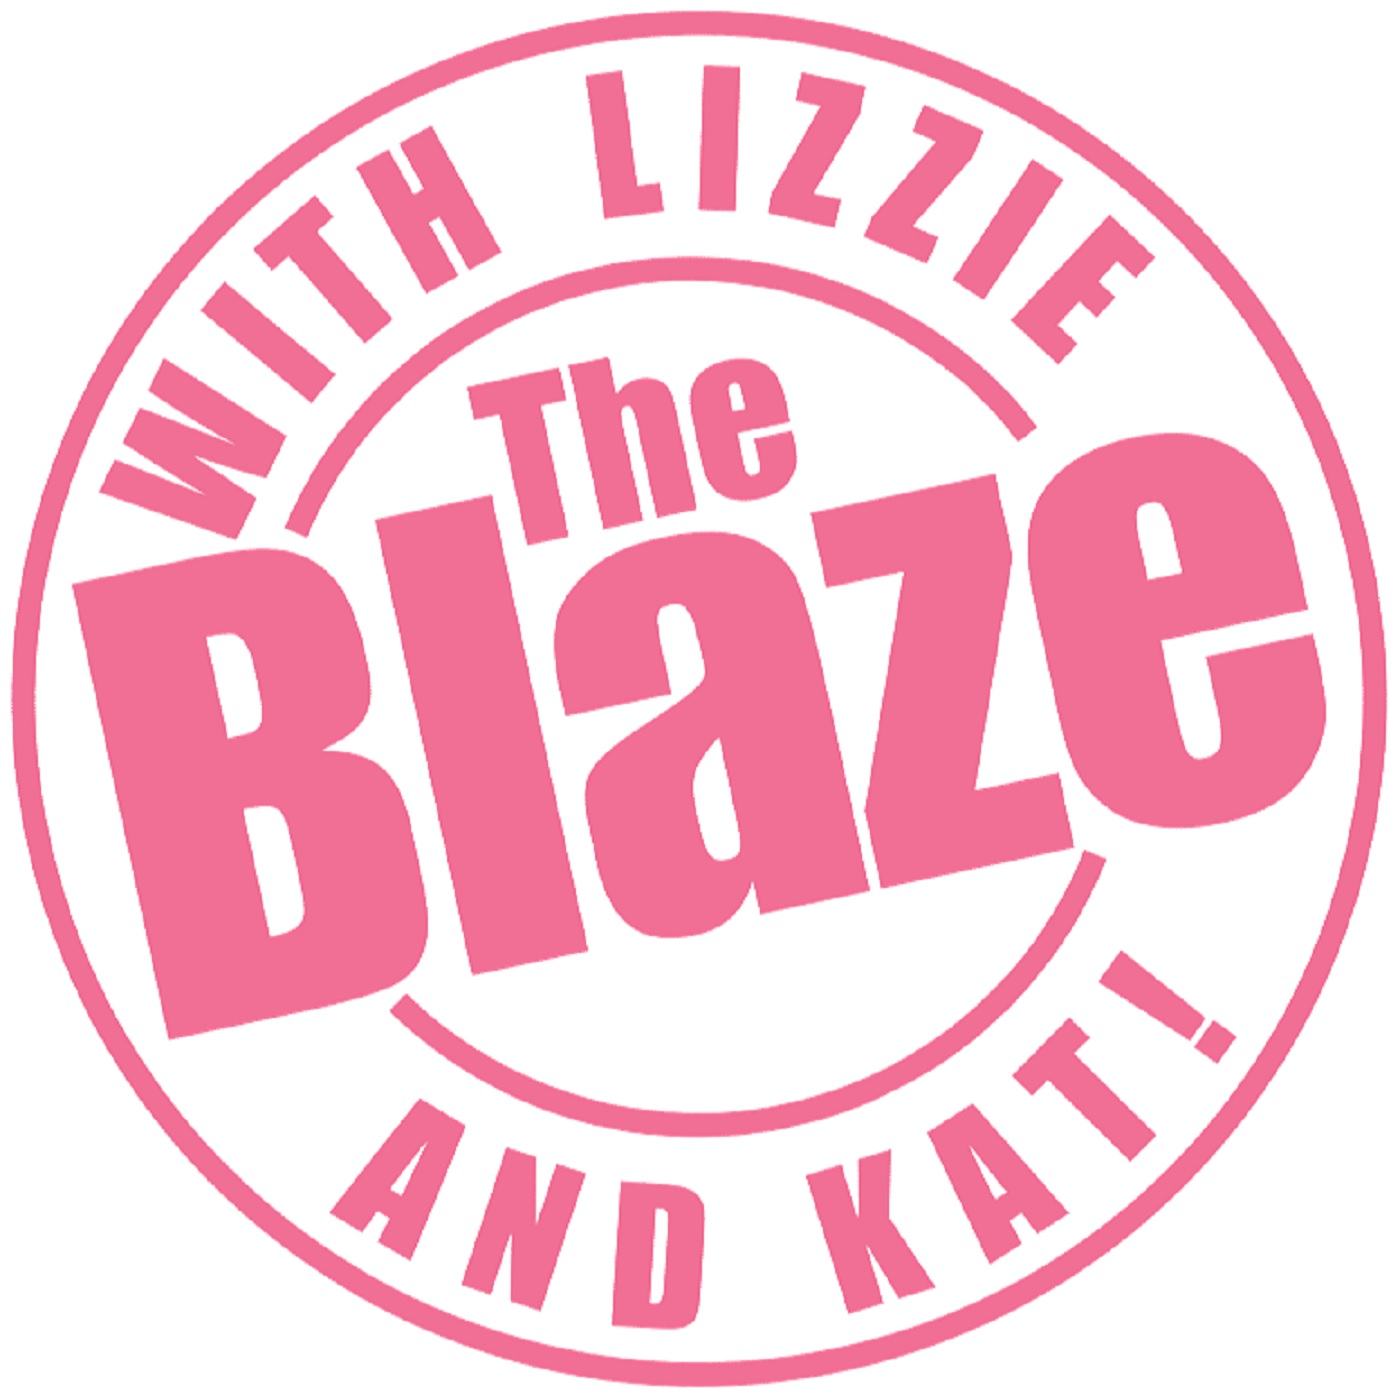 The Blaze with Lizzie and Kat! The Original Beverly Hills 90210 Podcast show art